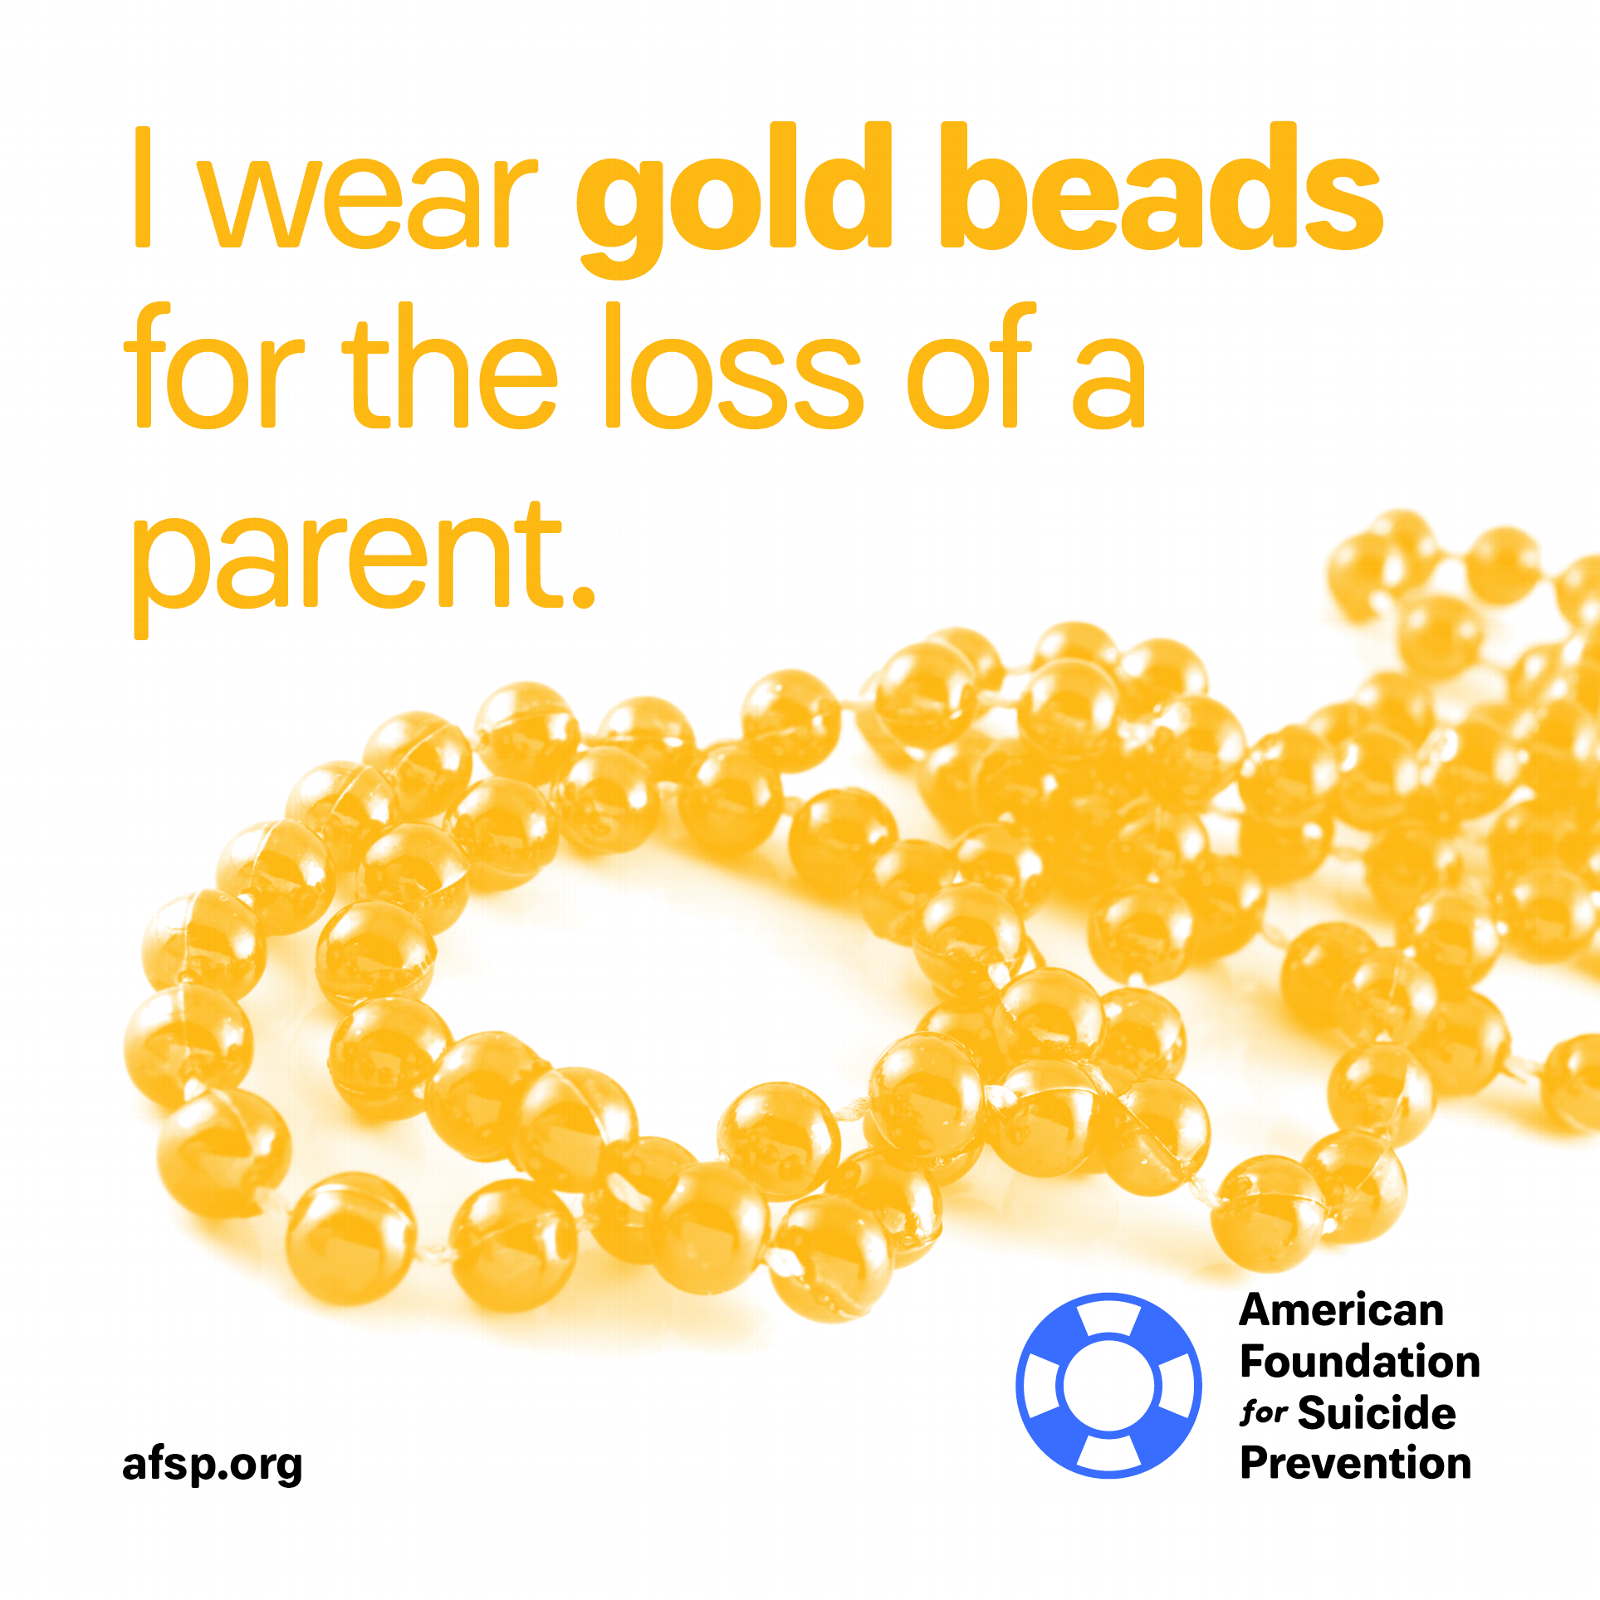 Gold beads for loss of a parent